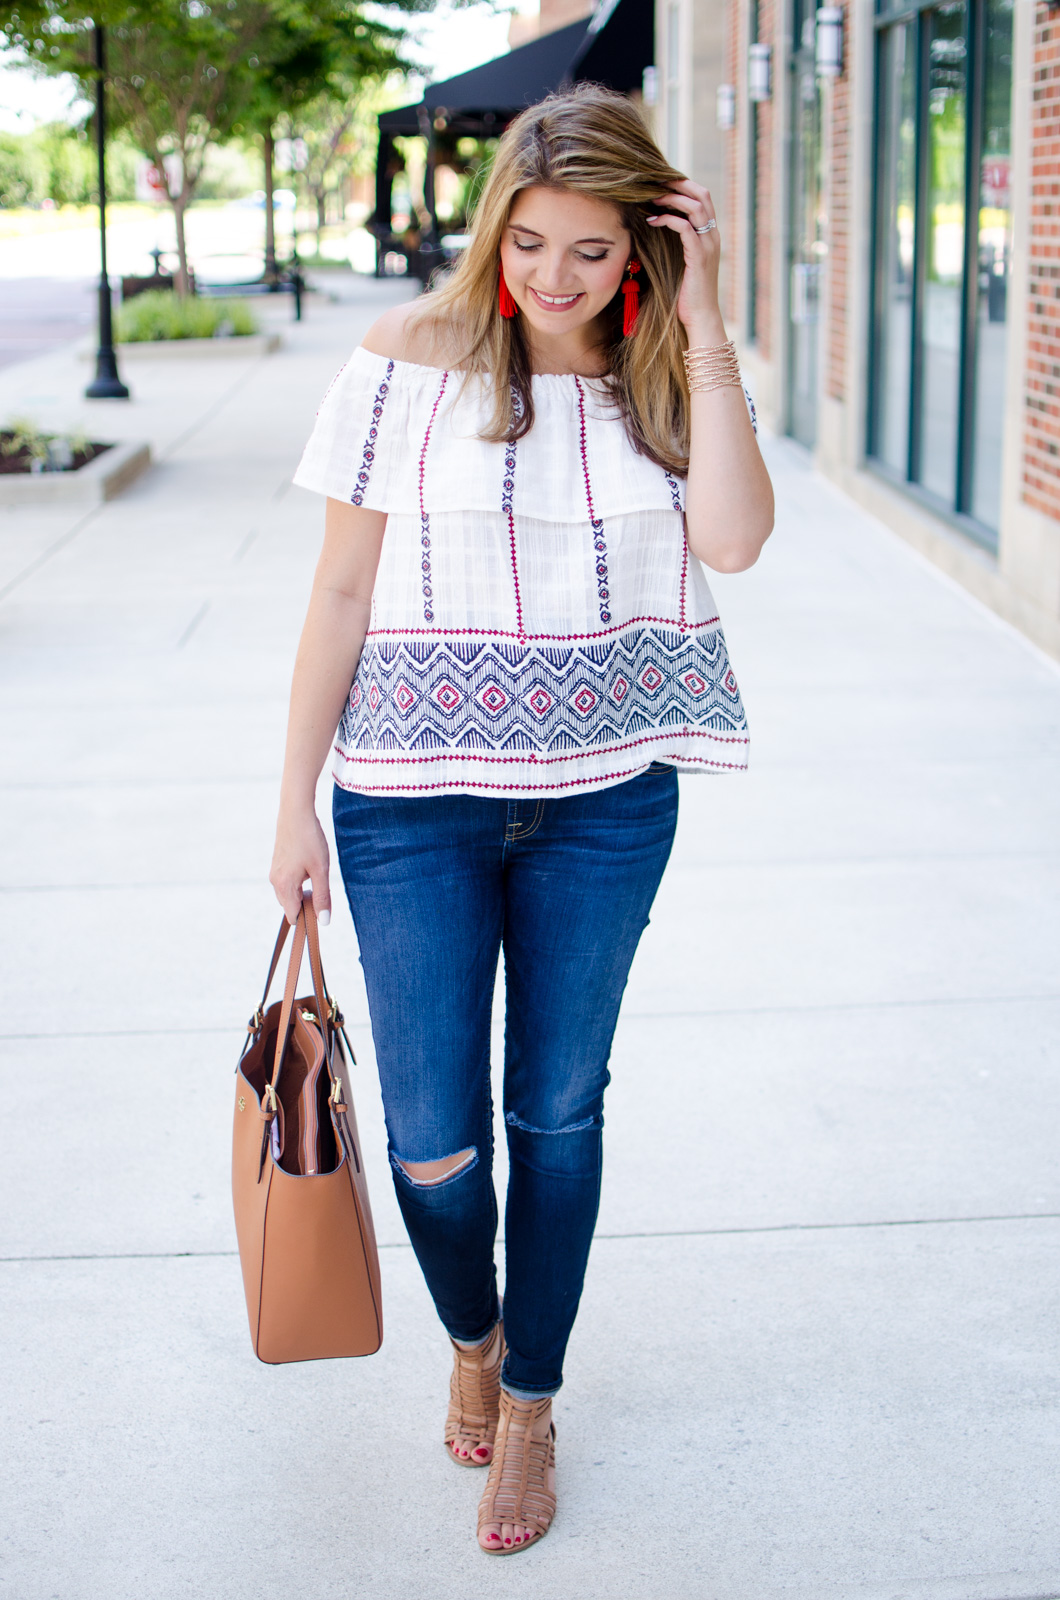 Red White and Blue Summer Outfit | By Lauren M